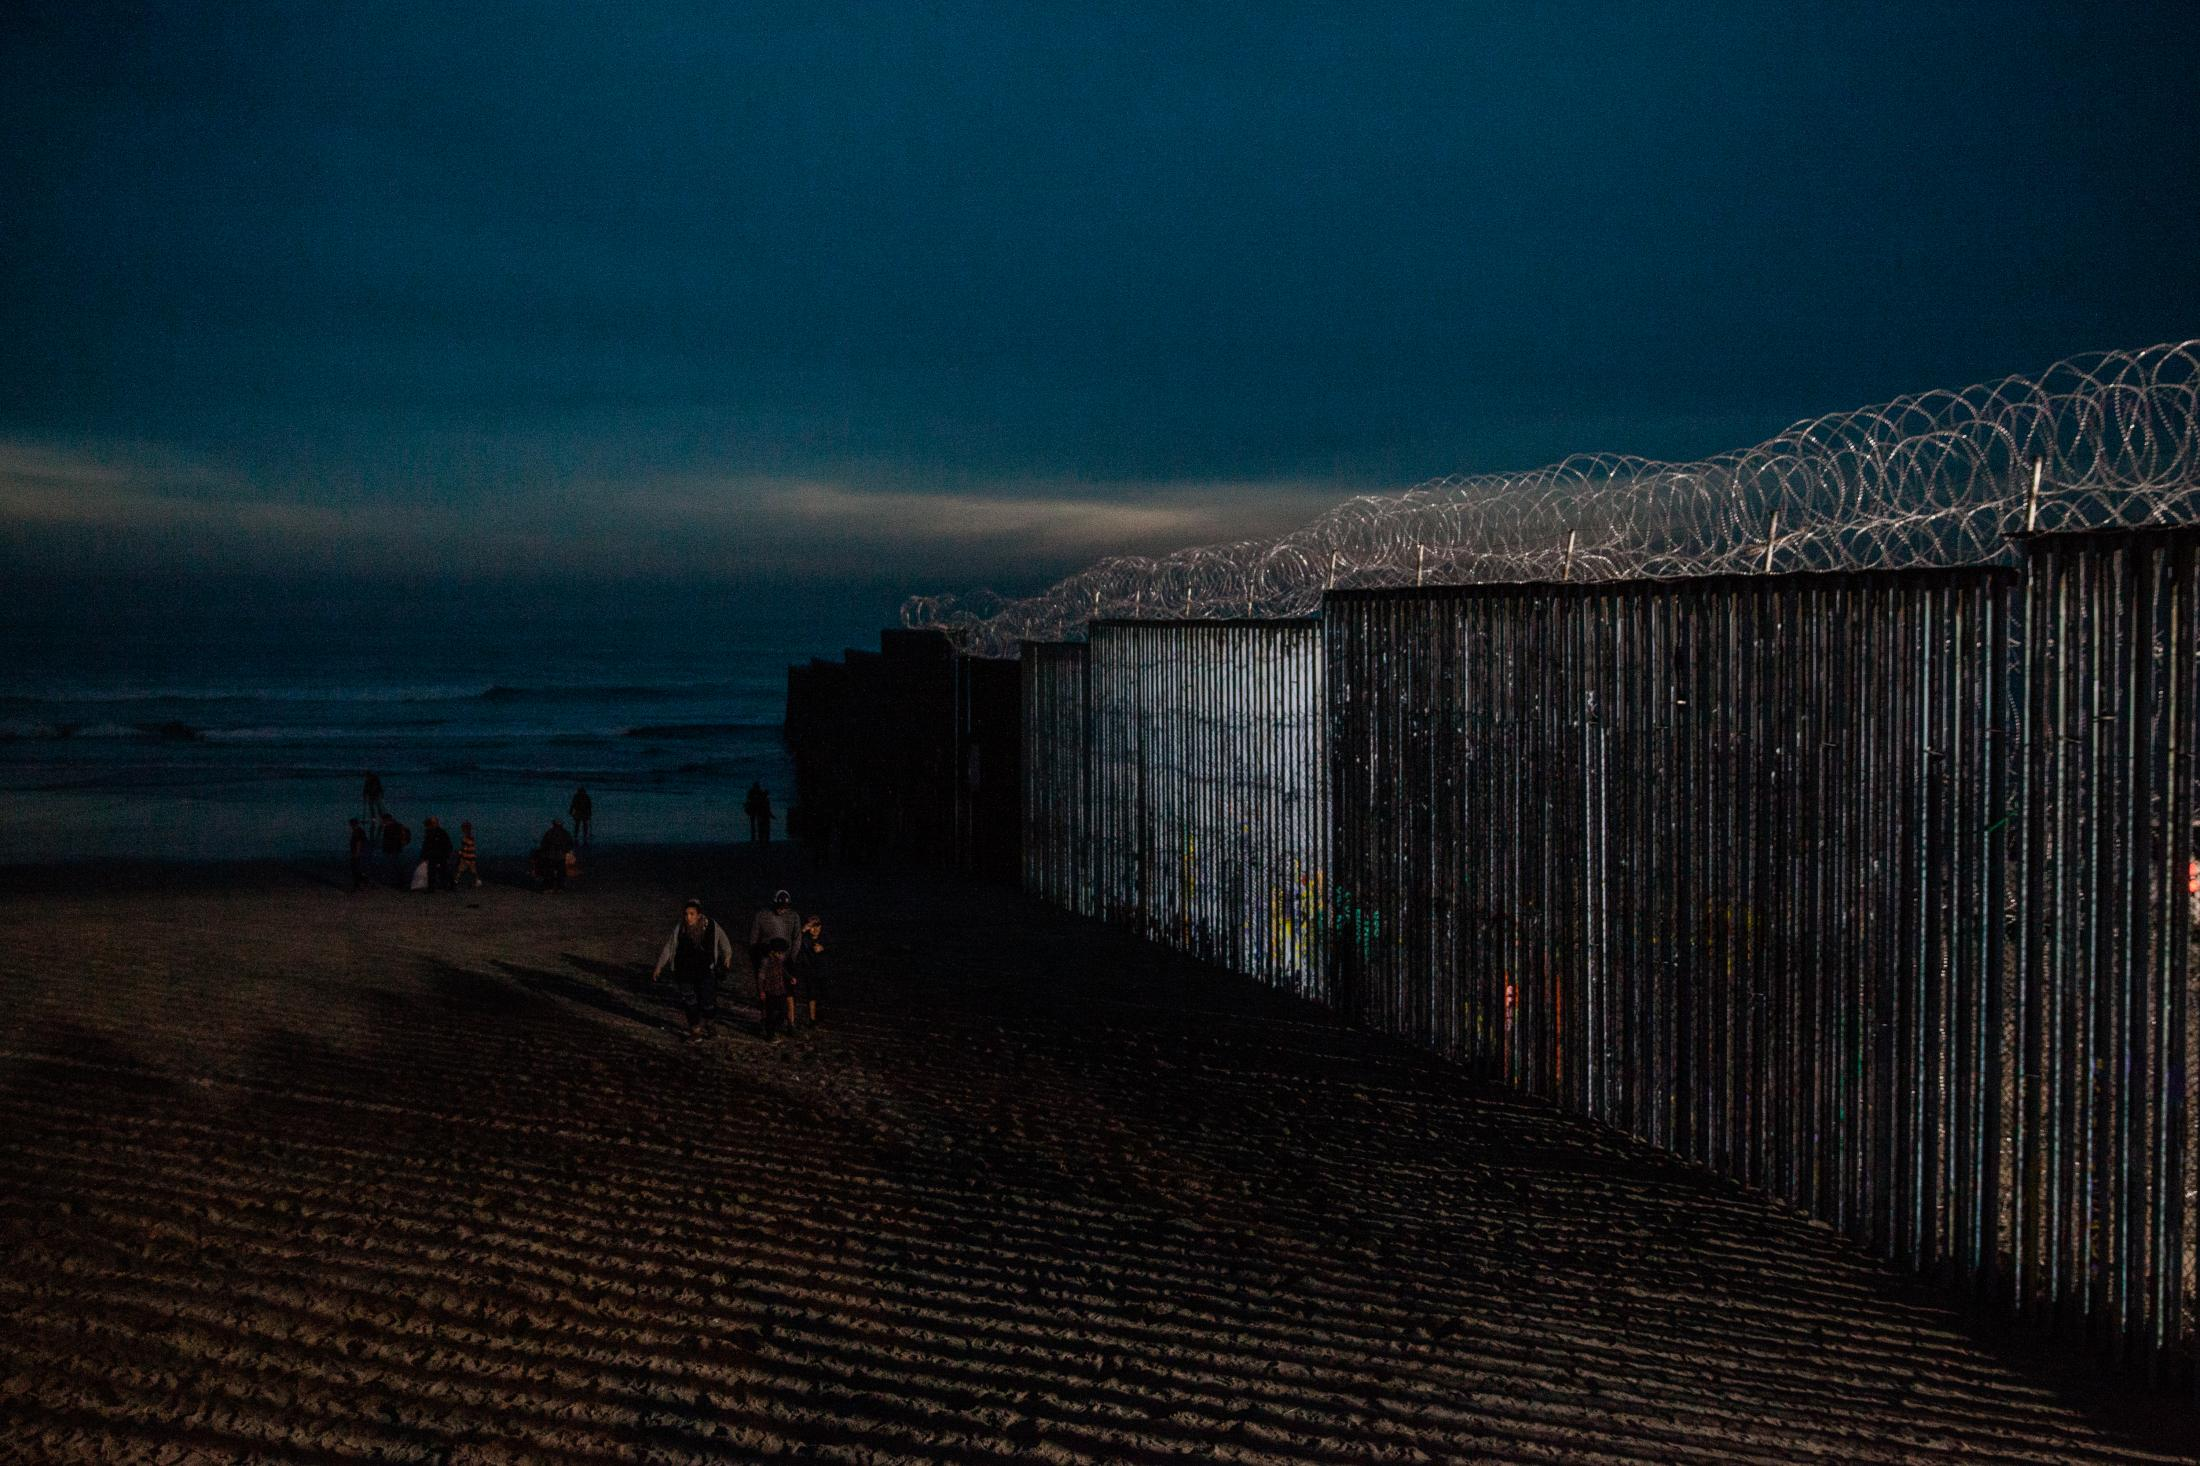 Playas de Tijuana on December 9, 2018. At night the beach is lit up with lights from the U.S. side to help Border Patrol find people trying to cross illegally.